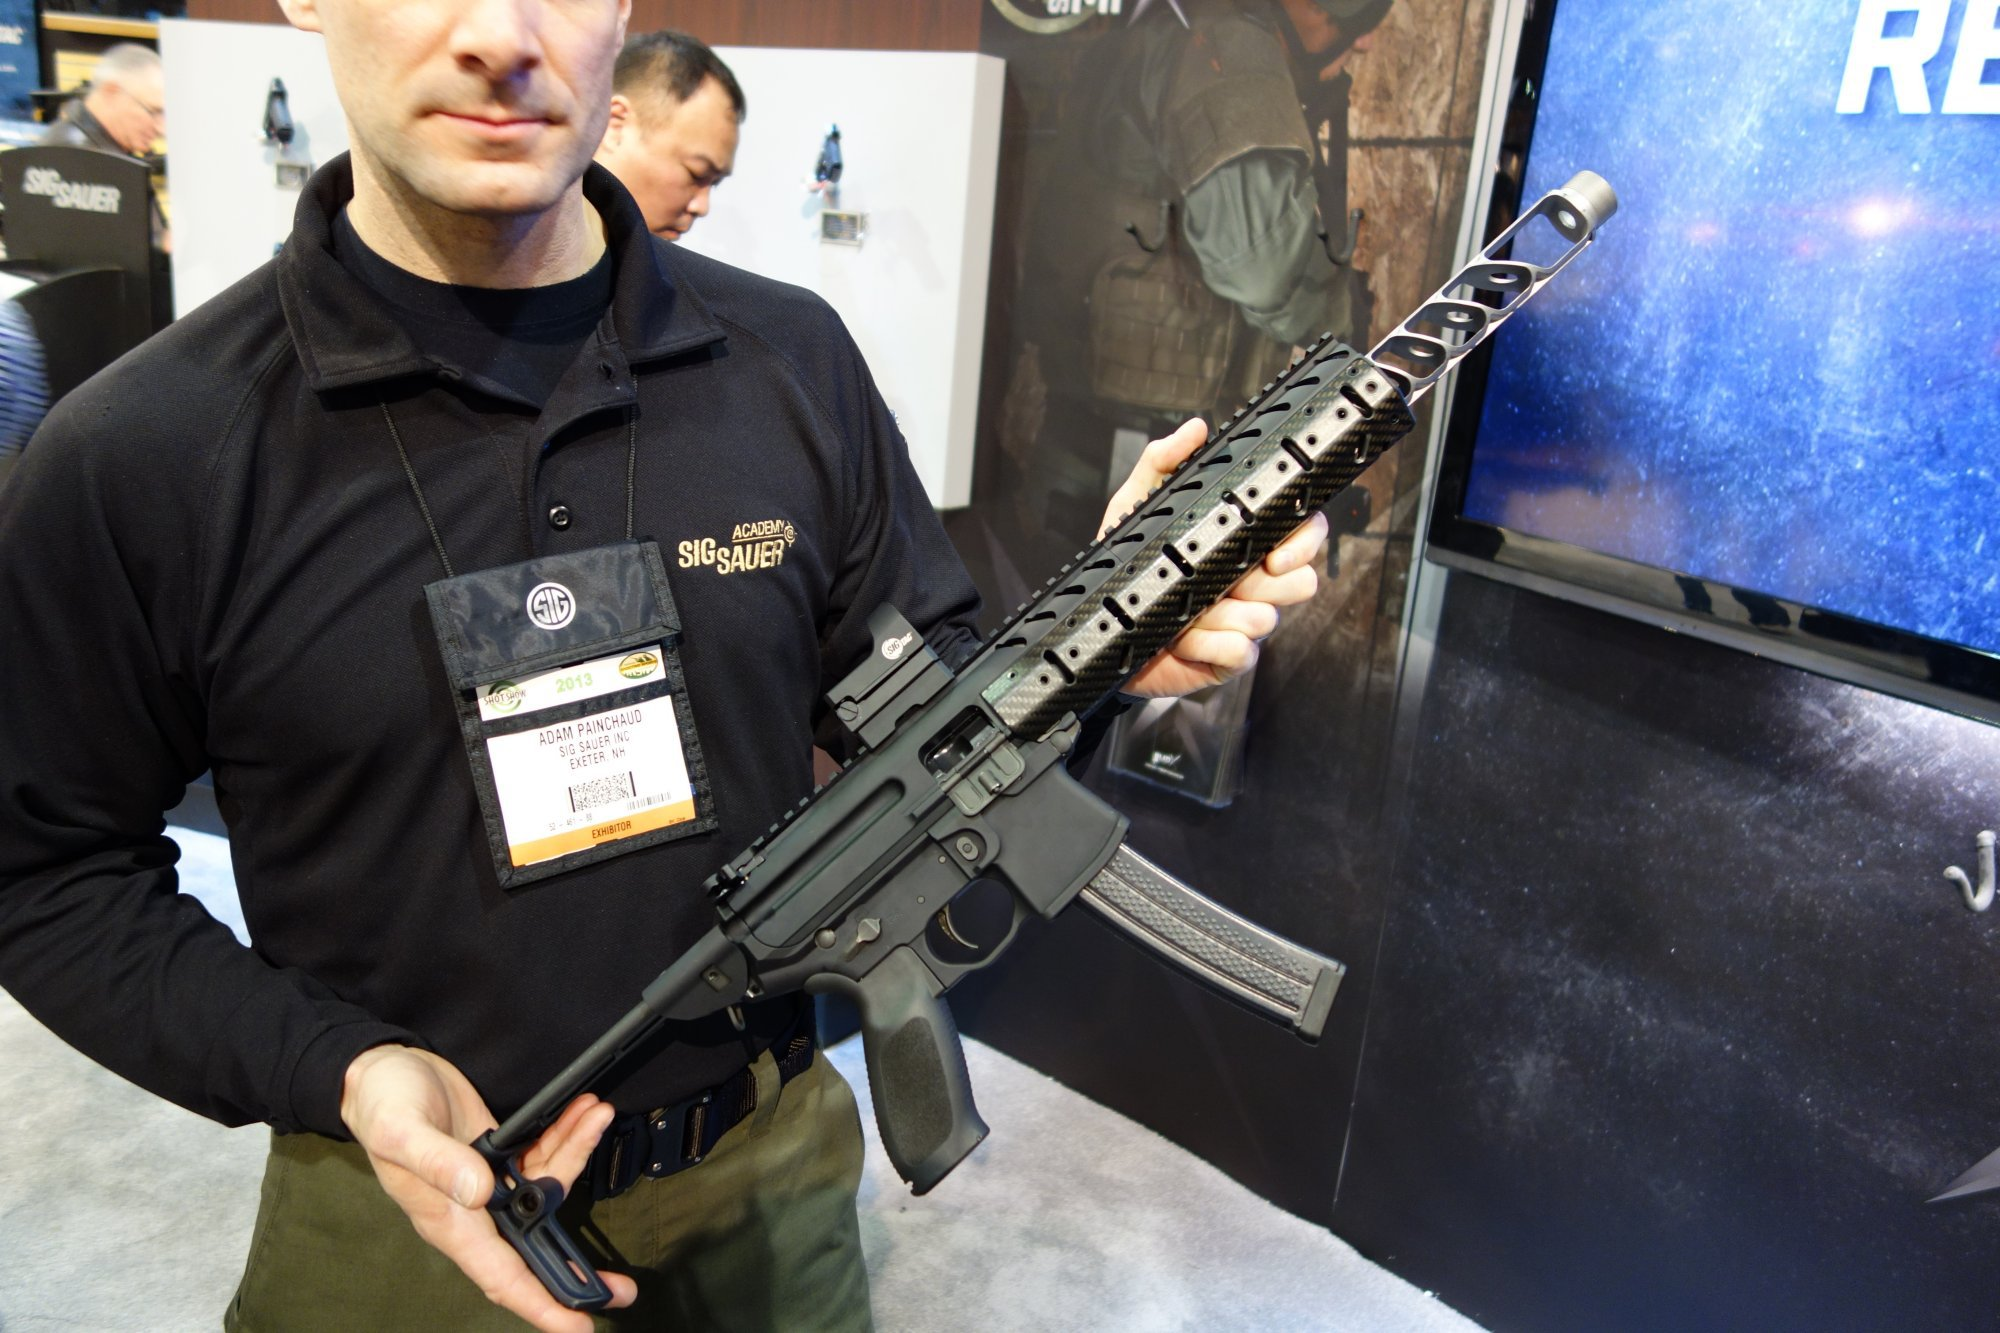 SIG MPX, MPX-C and MPX-K Multi-Caliber Submachine Gun (SMG)/Semi-Auto-Only Carbine/SBR Personal Defense Weapon (PDW) Packages with Silencer/Sound Suppressor, Lancer Systems Translucent Polymer Magazine and SIGTAC Reflex Sight/Combat Optic (Video!)